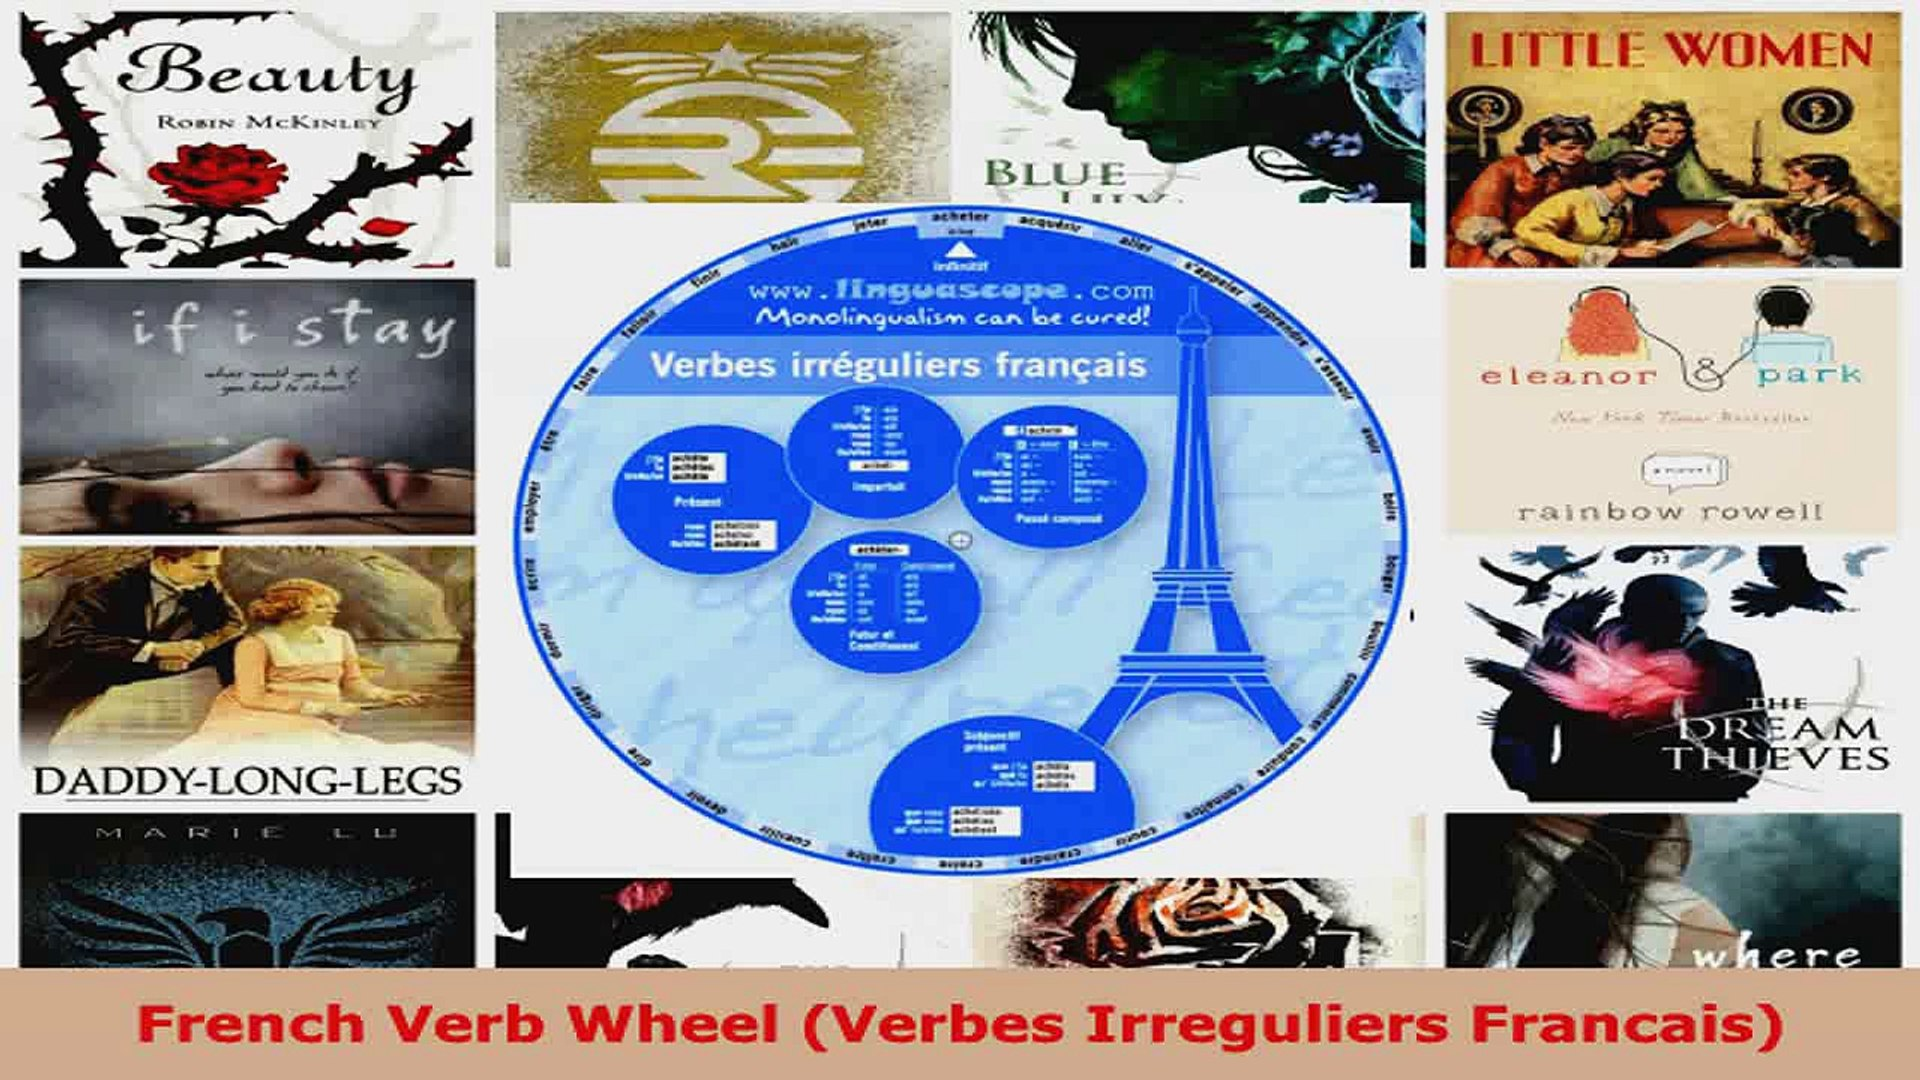 Download French Verb Wheel Verbes Irreguliers Francais Pdf Online Video Dailymotion